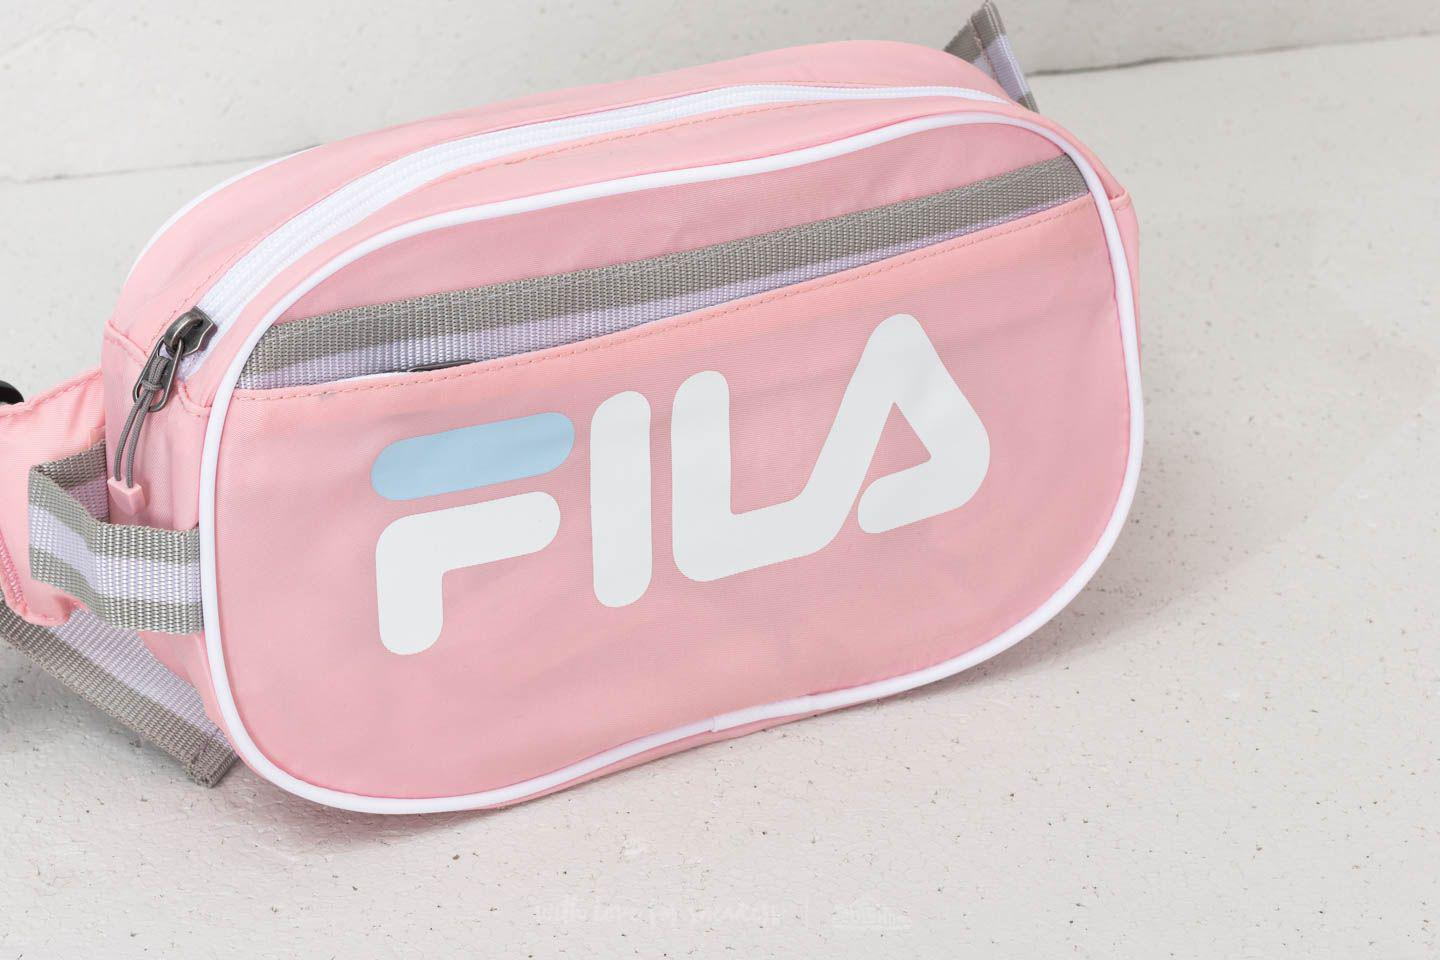 Lyst - Fila Bulky Waist Bag Coral Blush in Pink 3b86f1c8e19d3